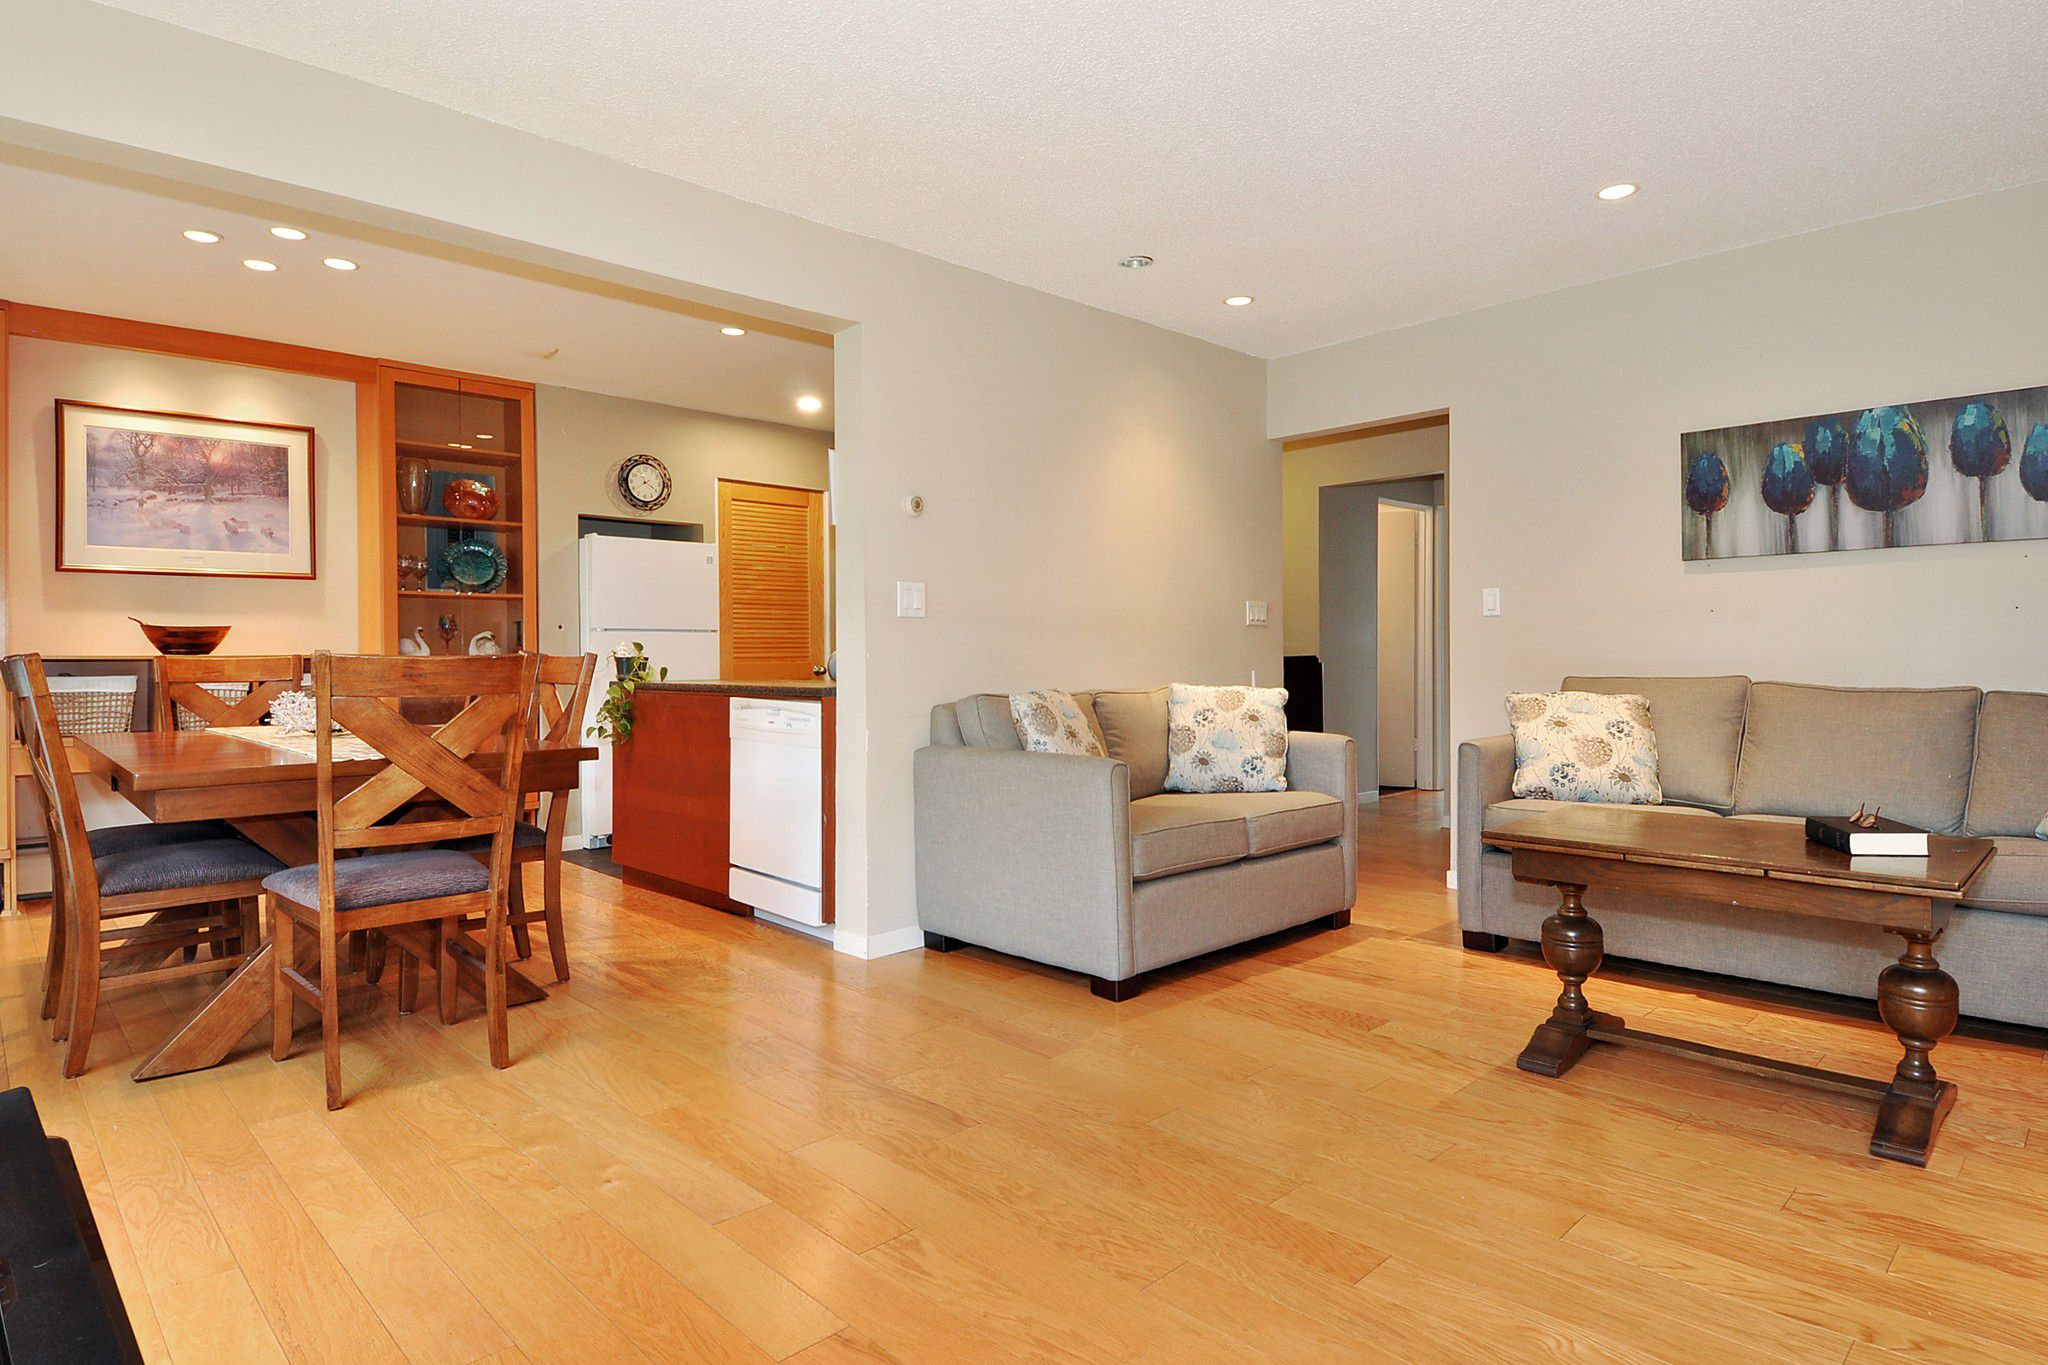 """Main Photo: 720 WESTVIEW Crescent in North Vancouver: Central Lonsdale Condo for sale in """"Cypress Gardens"""" : MLS®# R2370300"""